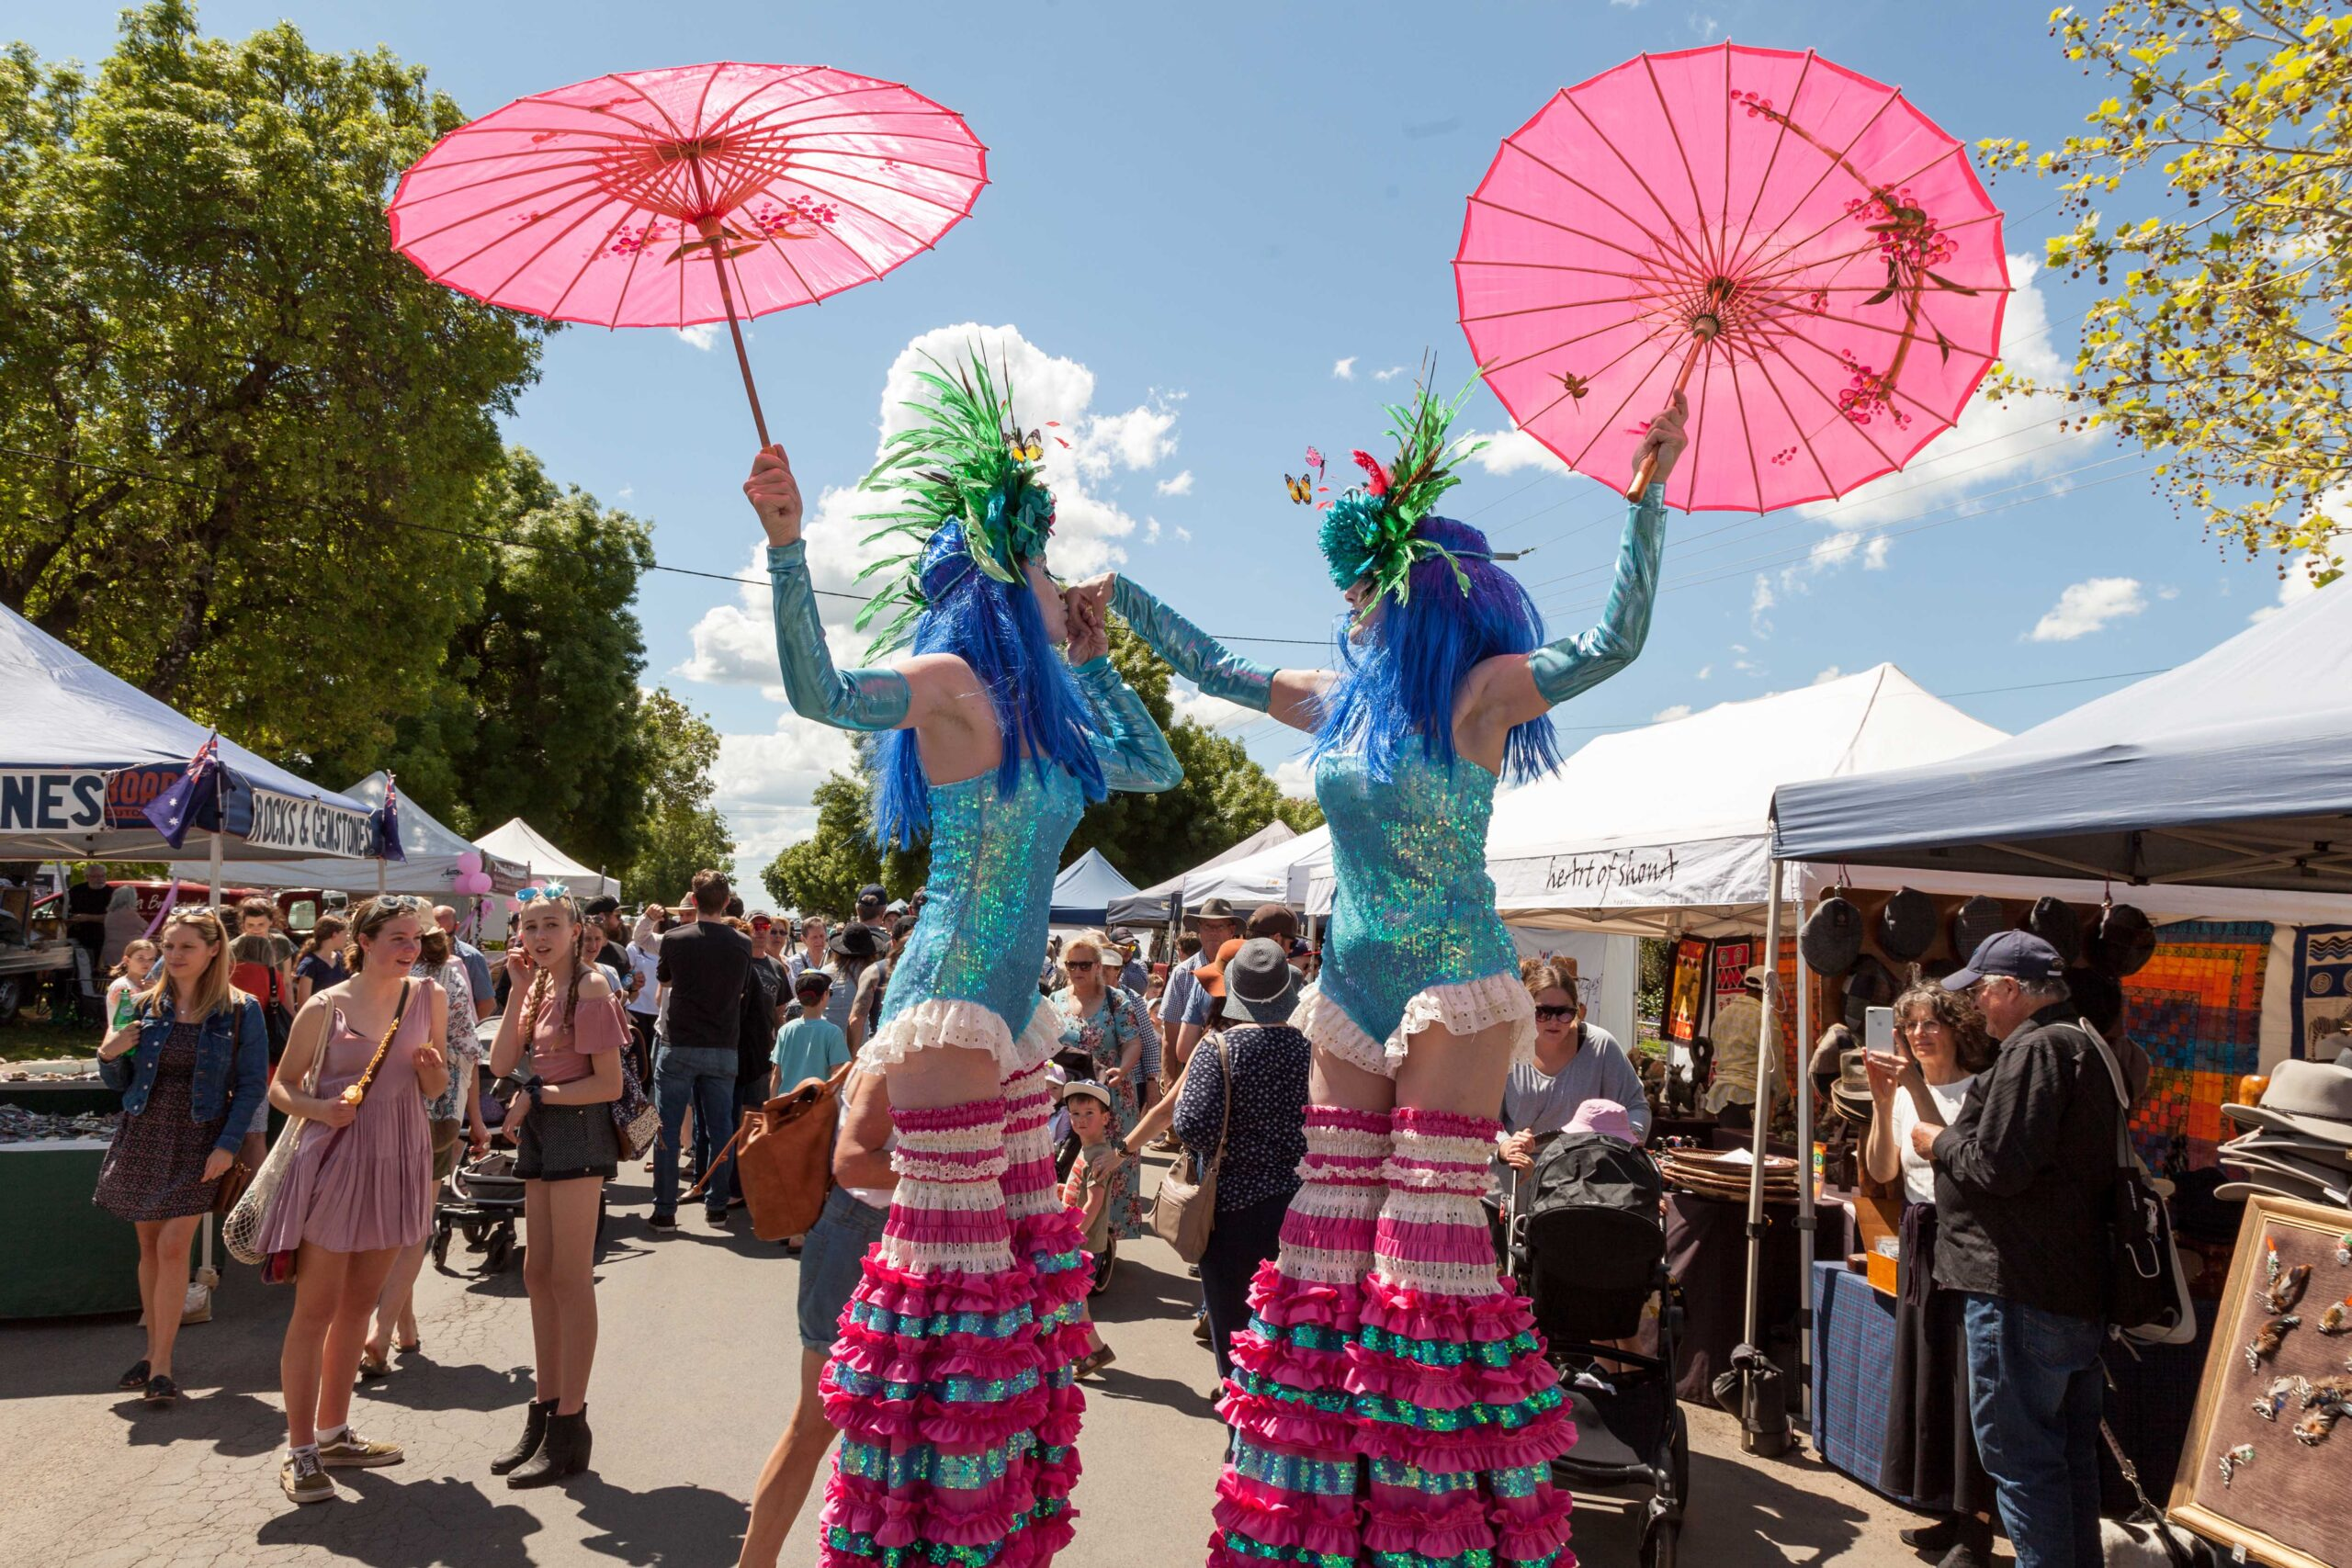 Wild Blooms at Birregura Festival  and Art Show Image Credit - Andrew Currie